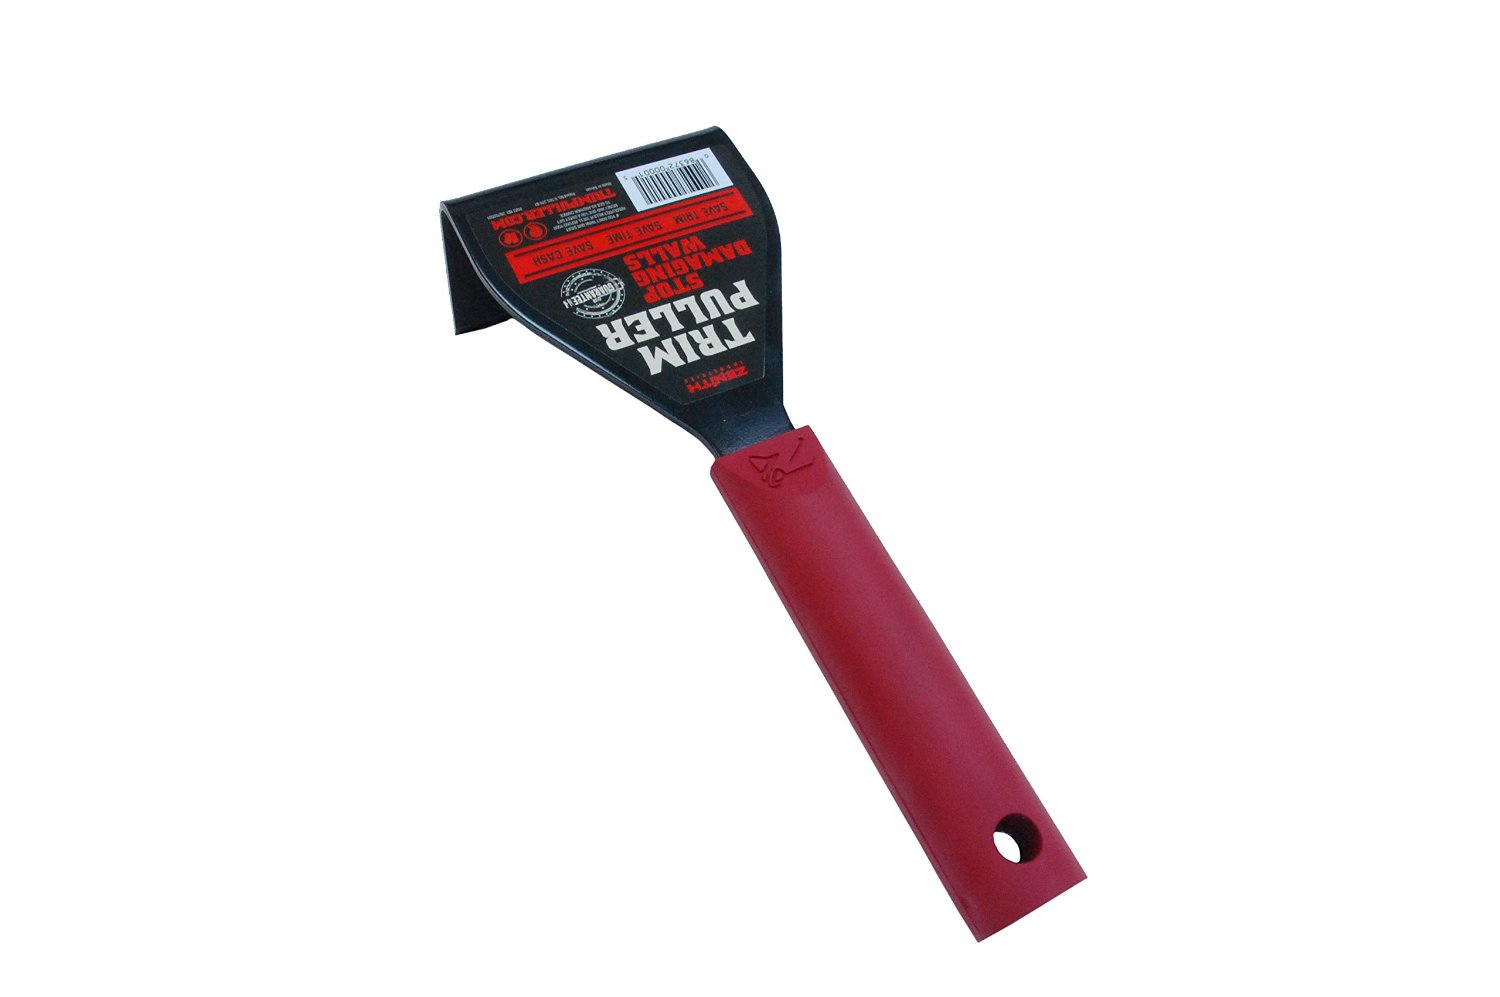 Zenith Trim Puller Safely Remove Baseboards Tool Craze